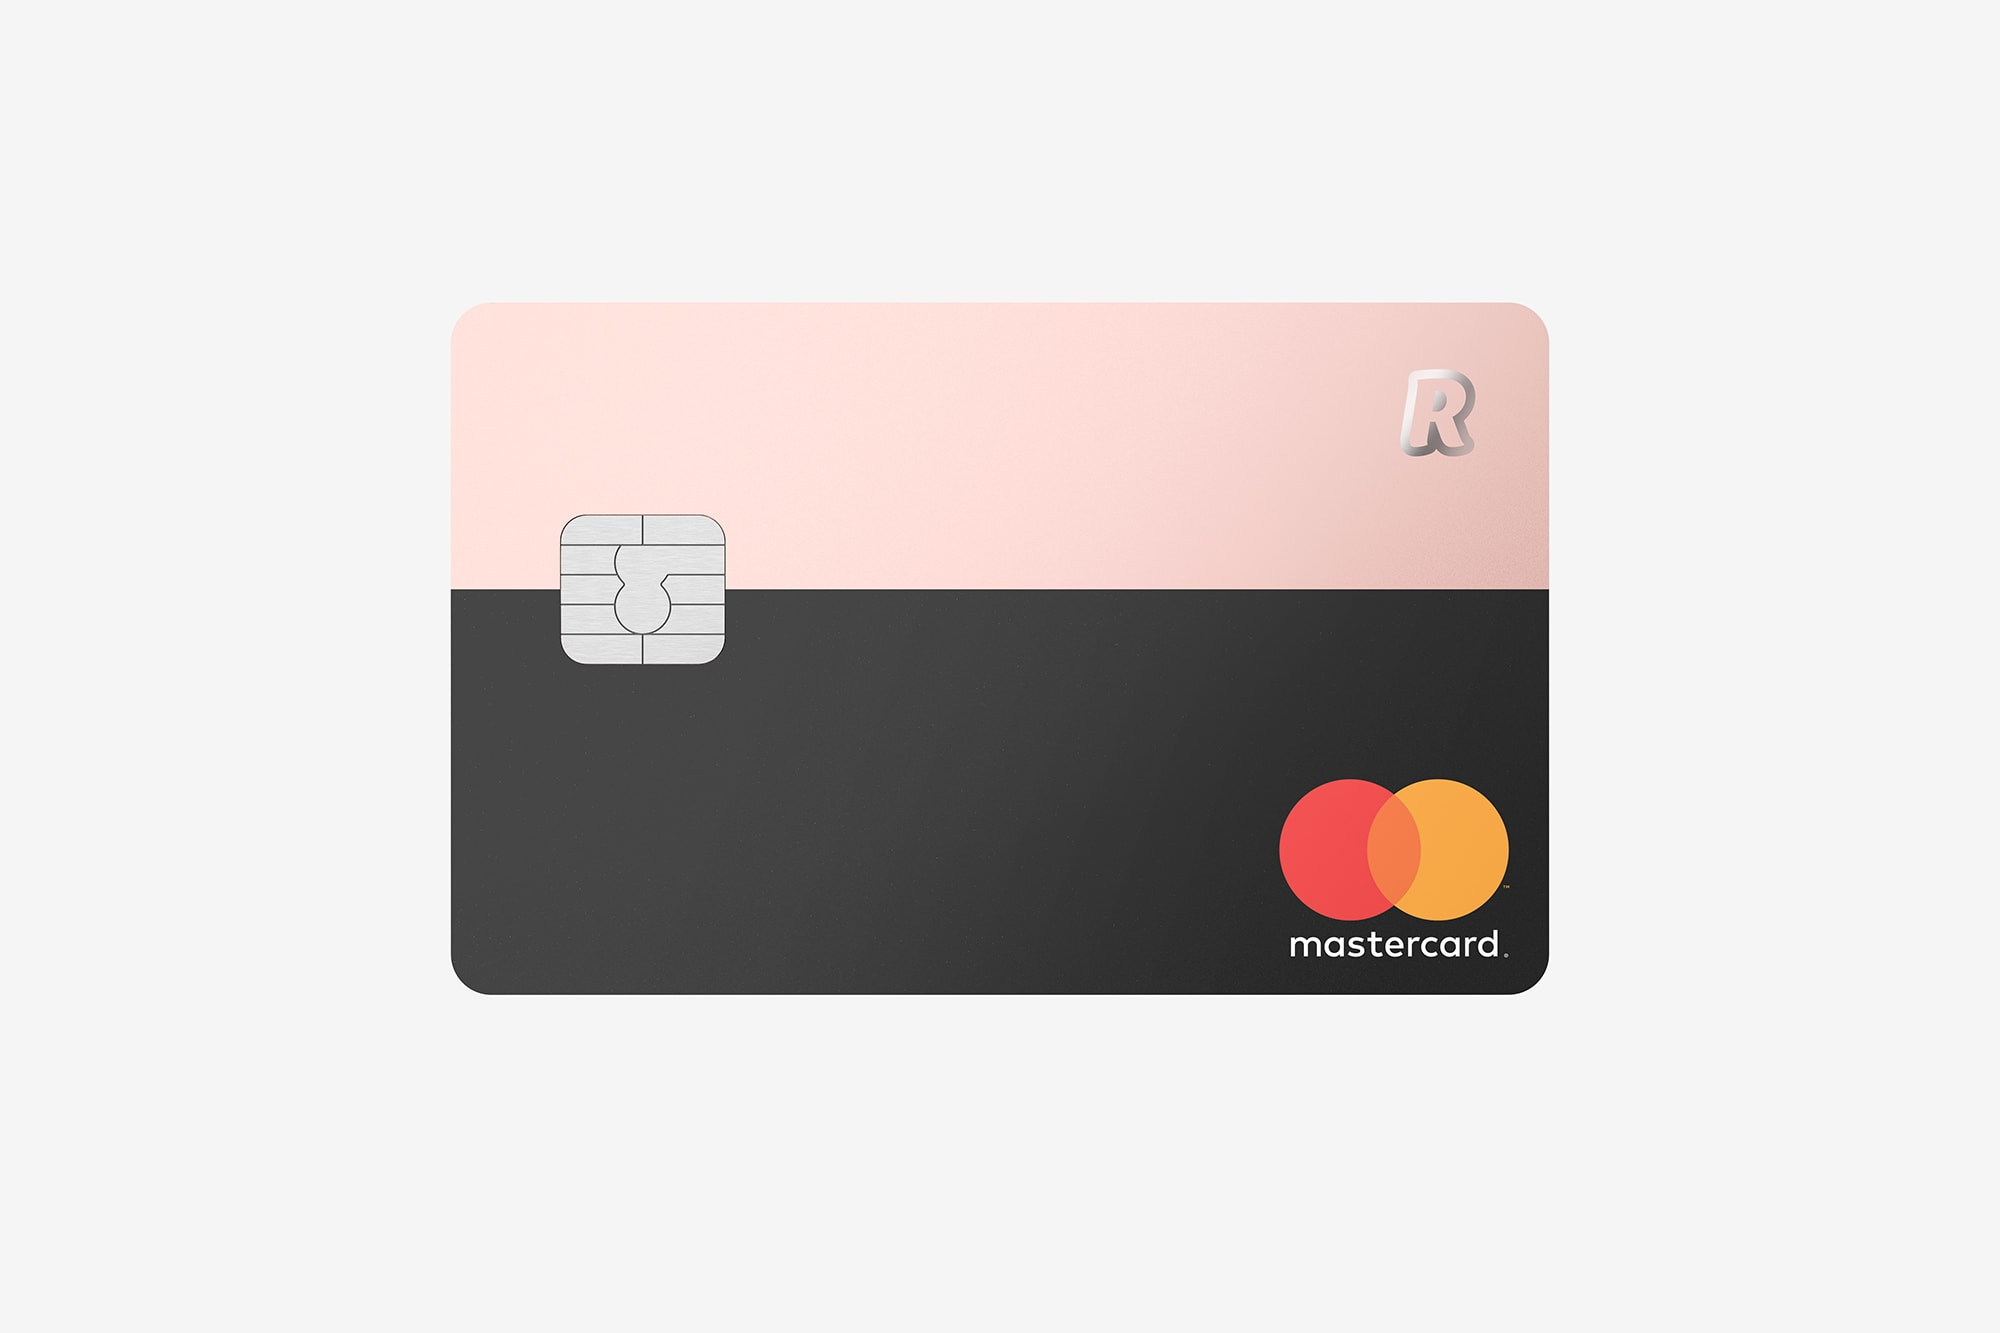 Front view of the Revolut Premium Bank Card showing a silver chip, a mastercard logo and Revolut logo, metallic pink and black.